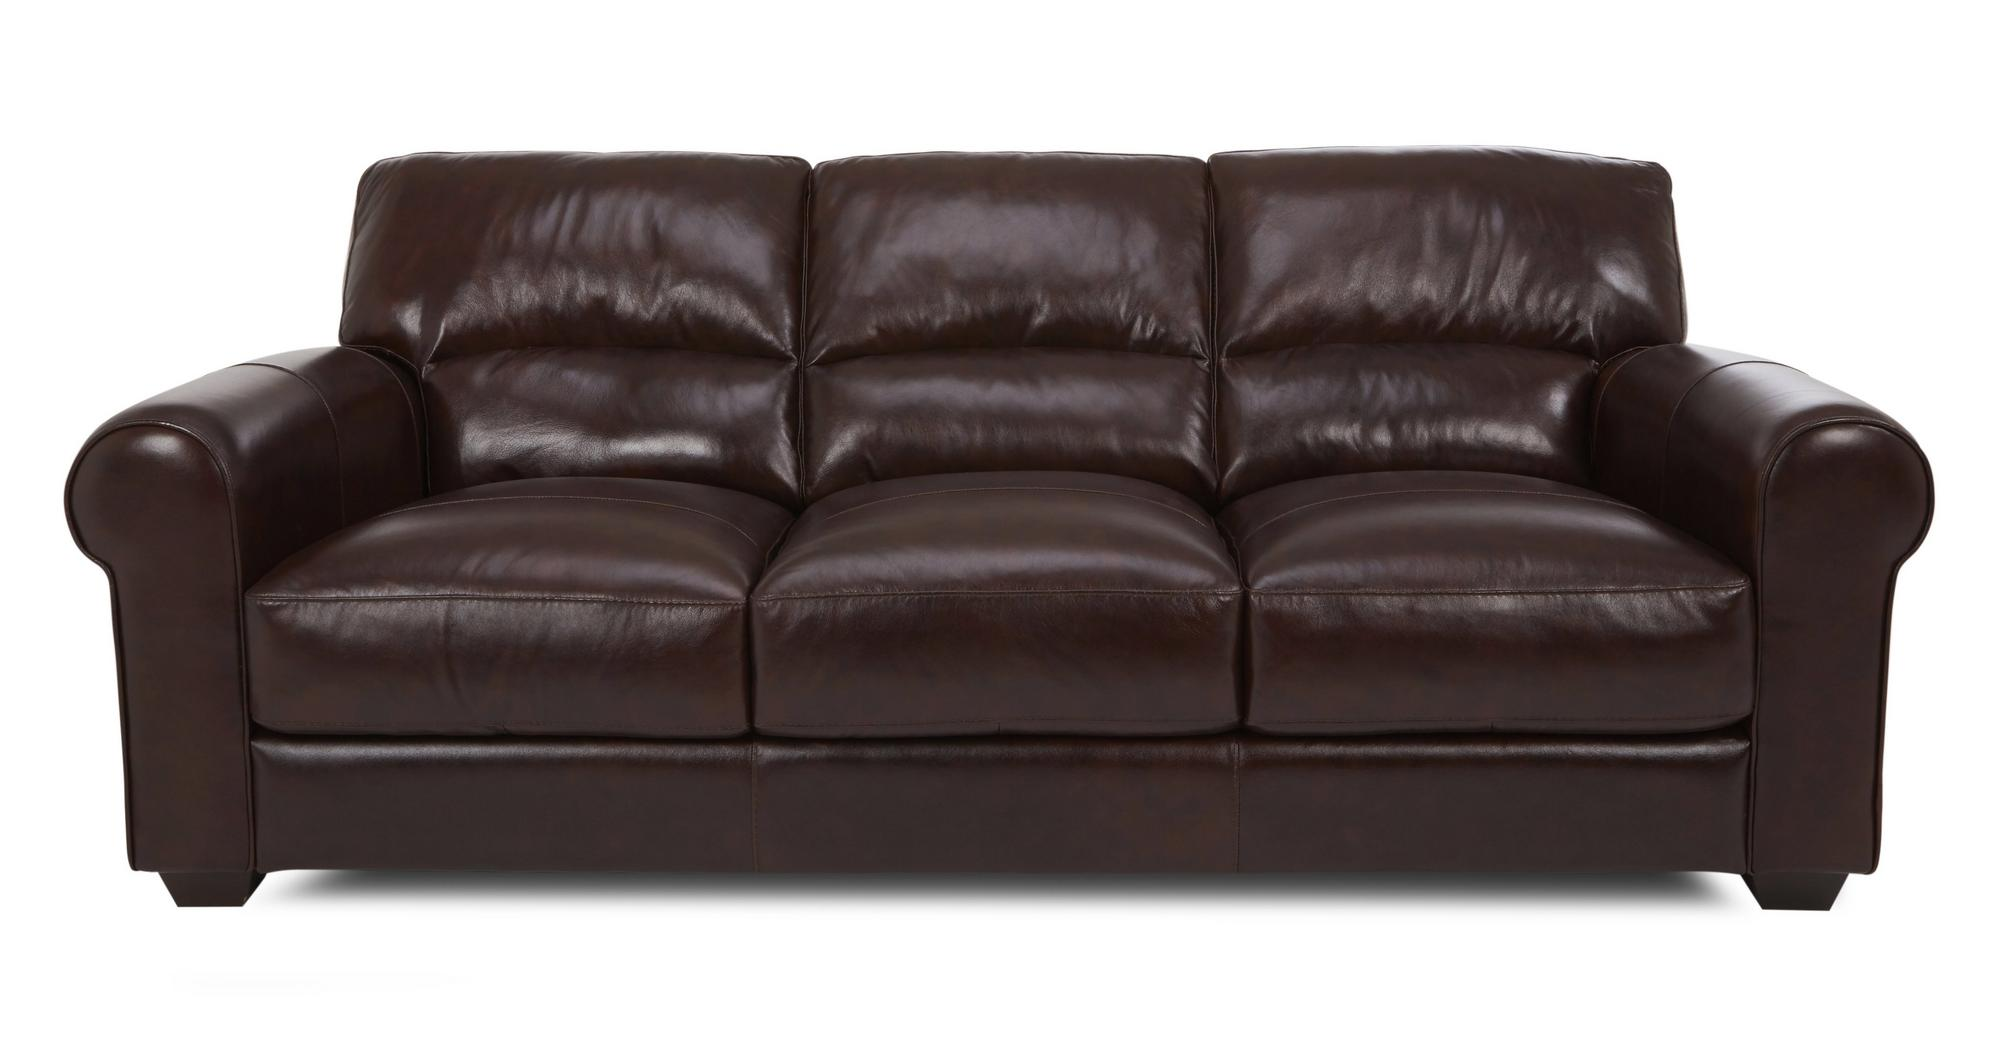 Sofa Recliner LeatherRecliner Bed TheSofa